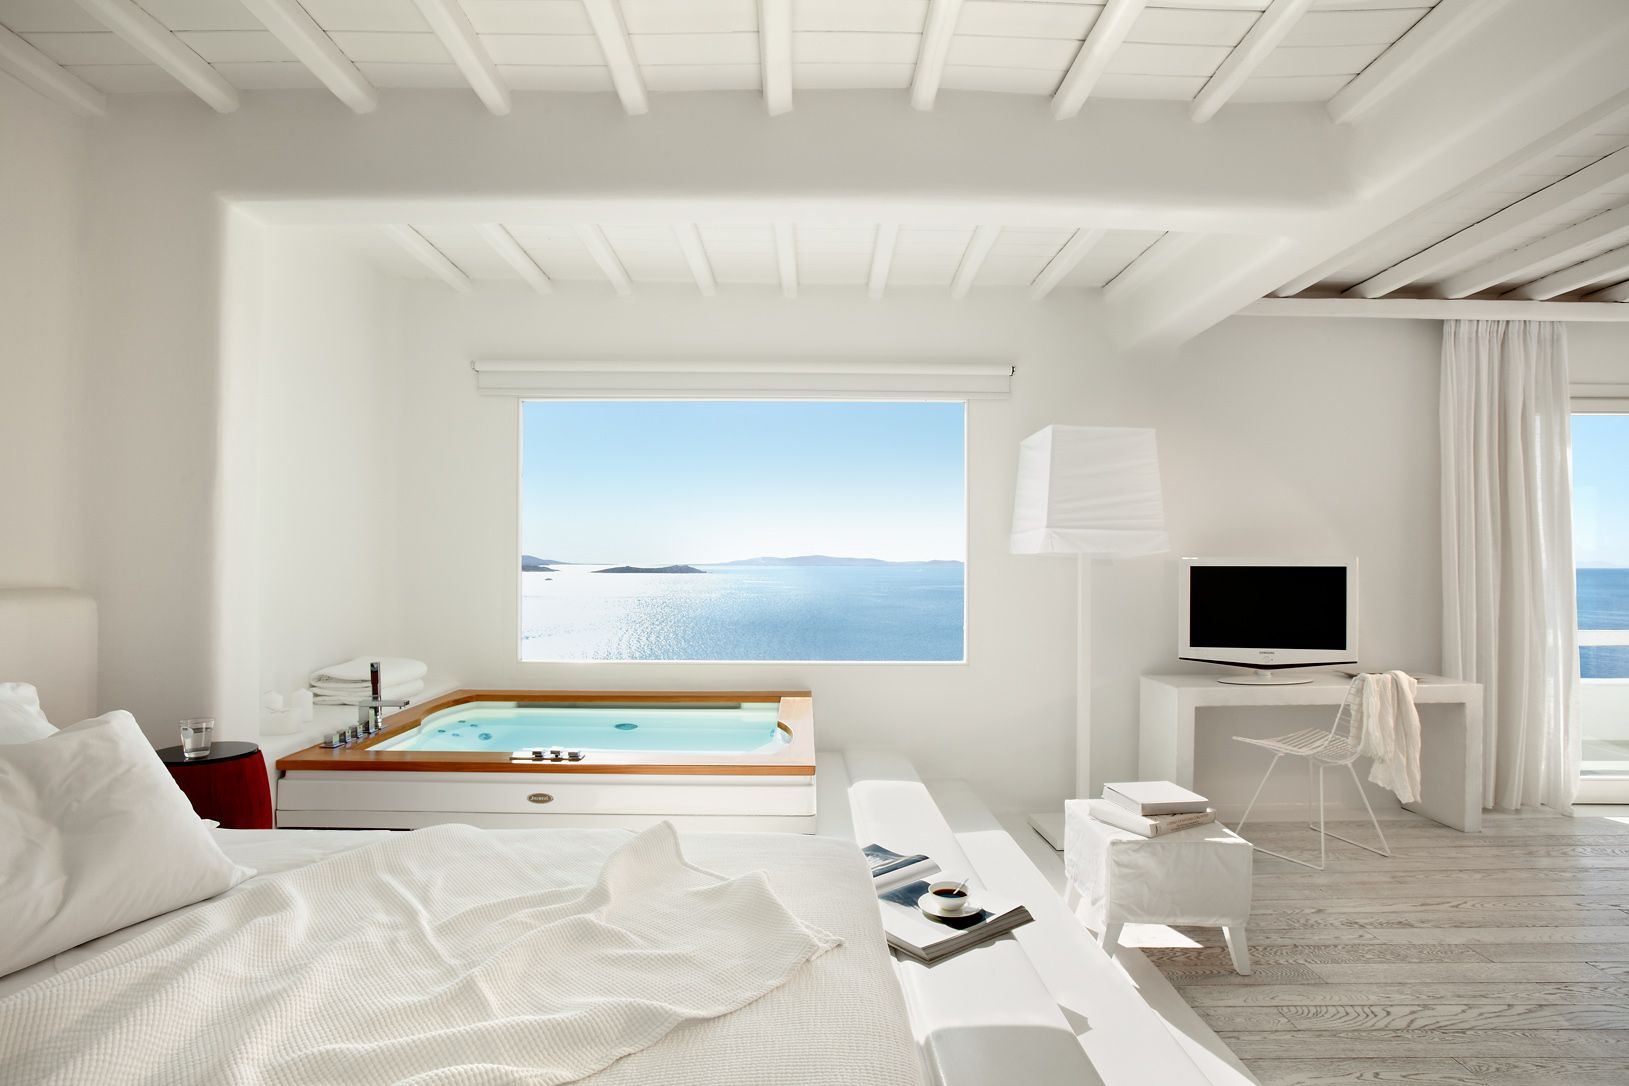 The Honeymoon Suite At The Cavo Tagoo In Mykonos With An Irresistible Jacuzzi Tub And A Private Pool O Camere D Albergo Hotel Di Lusso Idee Di Interior Design